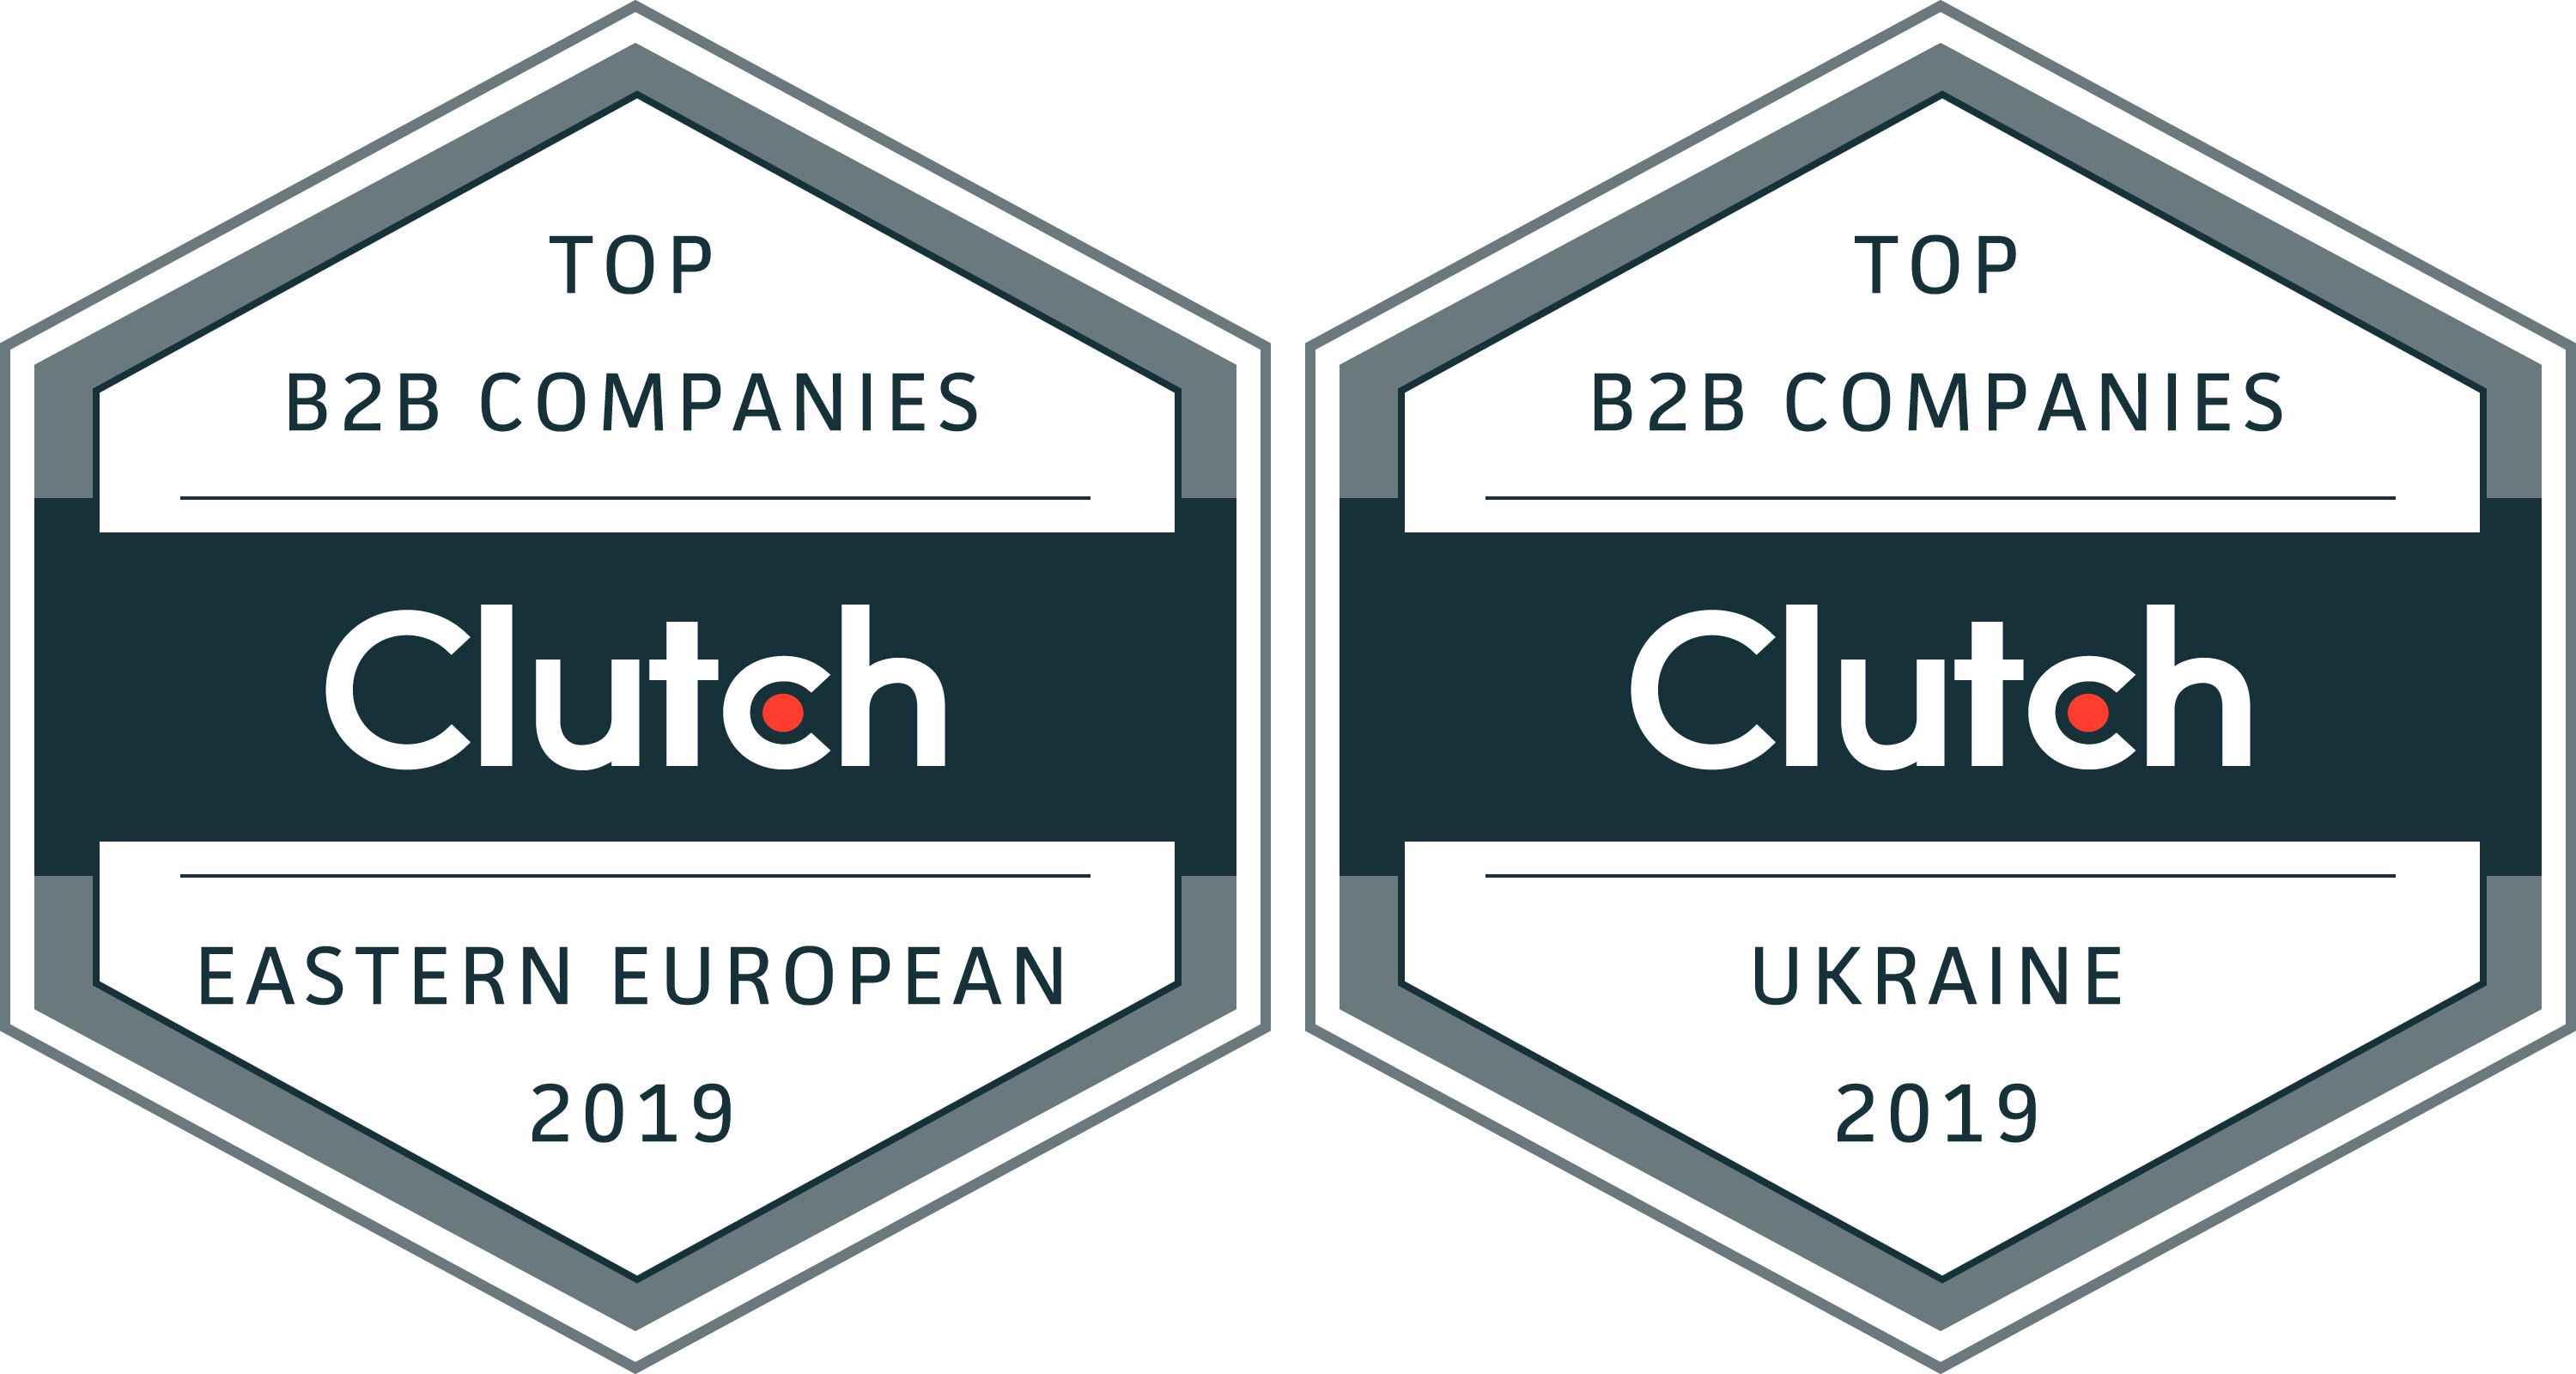 Darvideo Animation Studio Named Top B2B Company in Ukraine and Eastern Europe